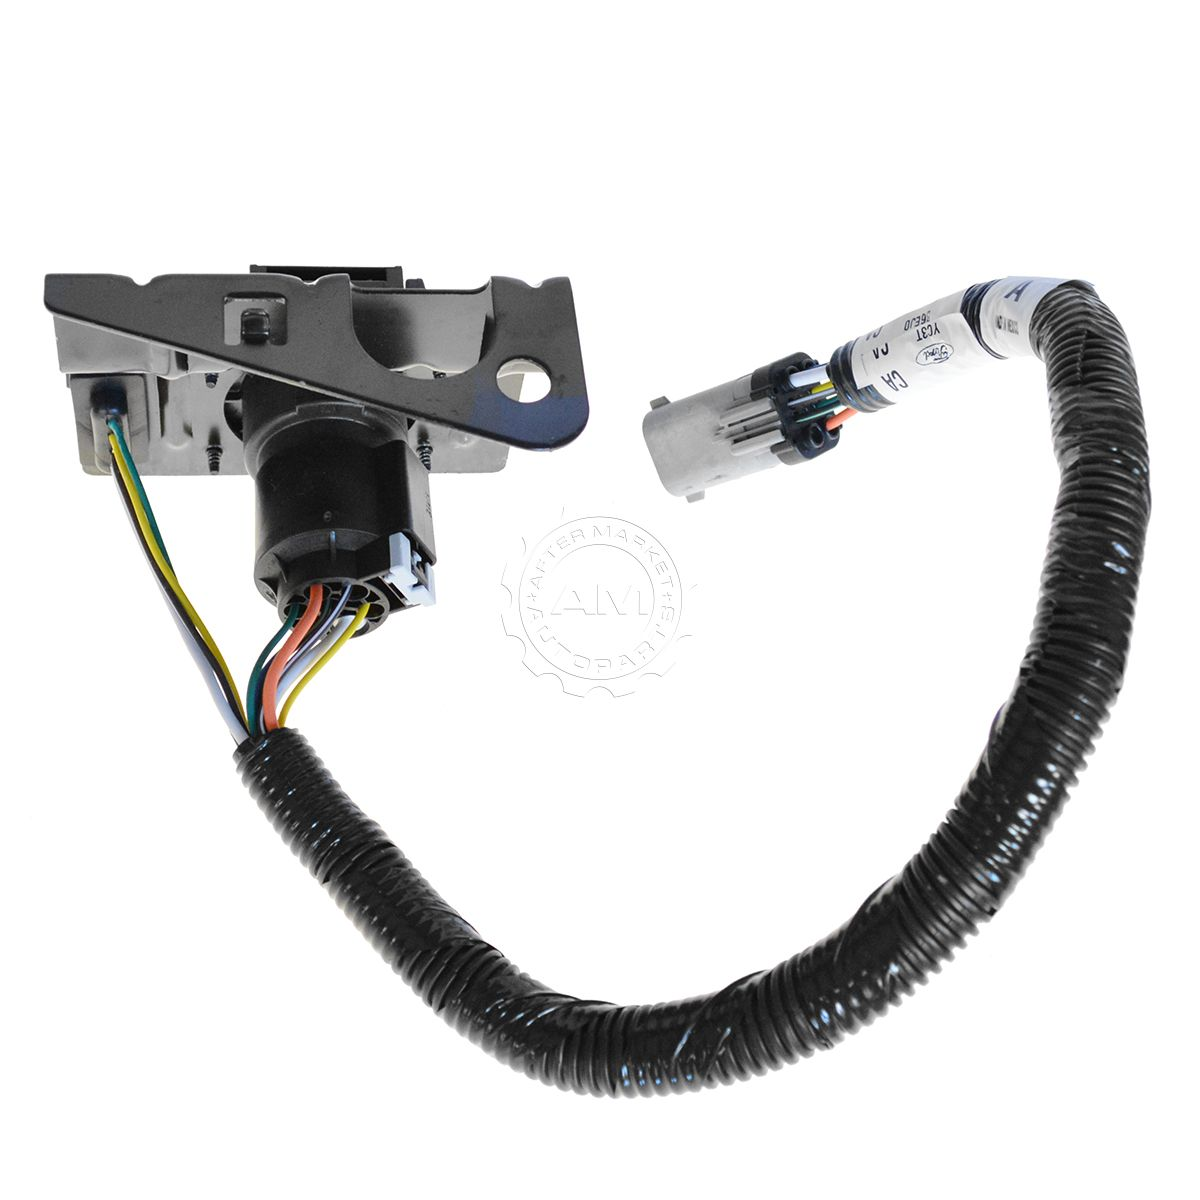 hight resolution of ford 4 7 pin trailer tow wiring harness w plug bracket for f250 nissan titan trailer wiring harness ford f350 trailer wiring harness